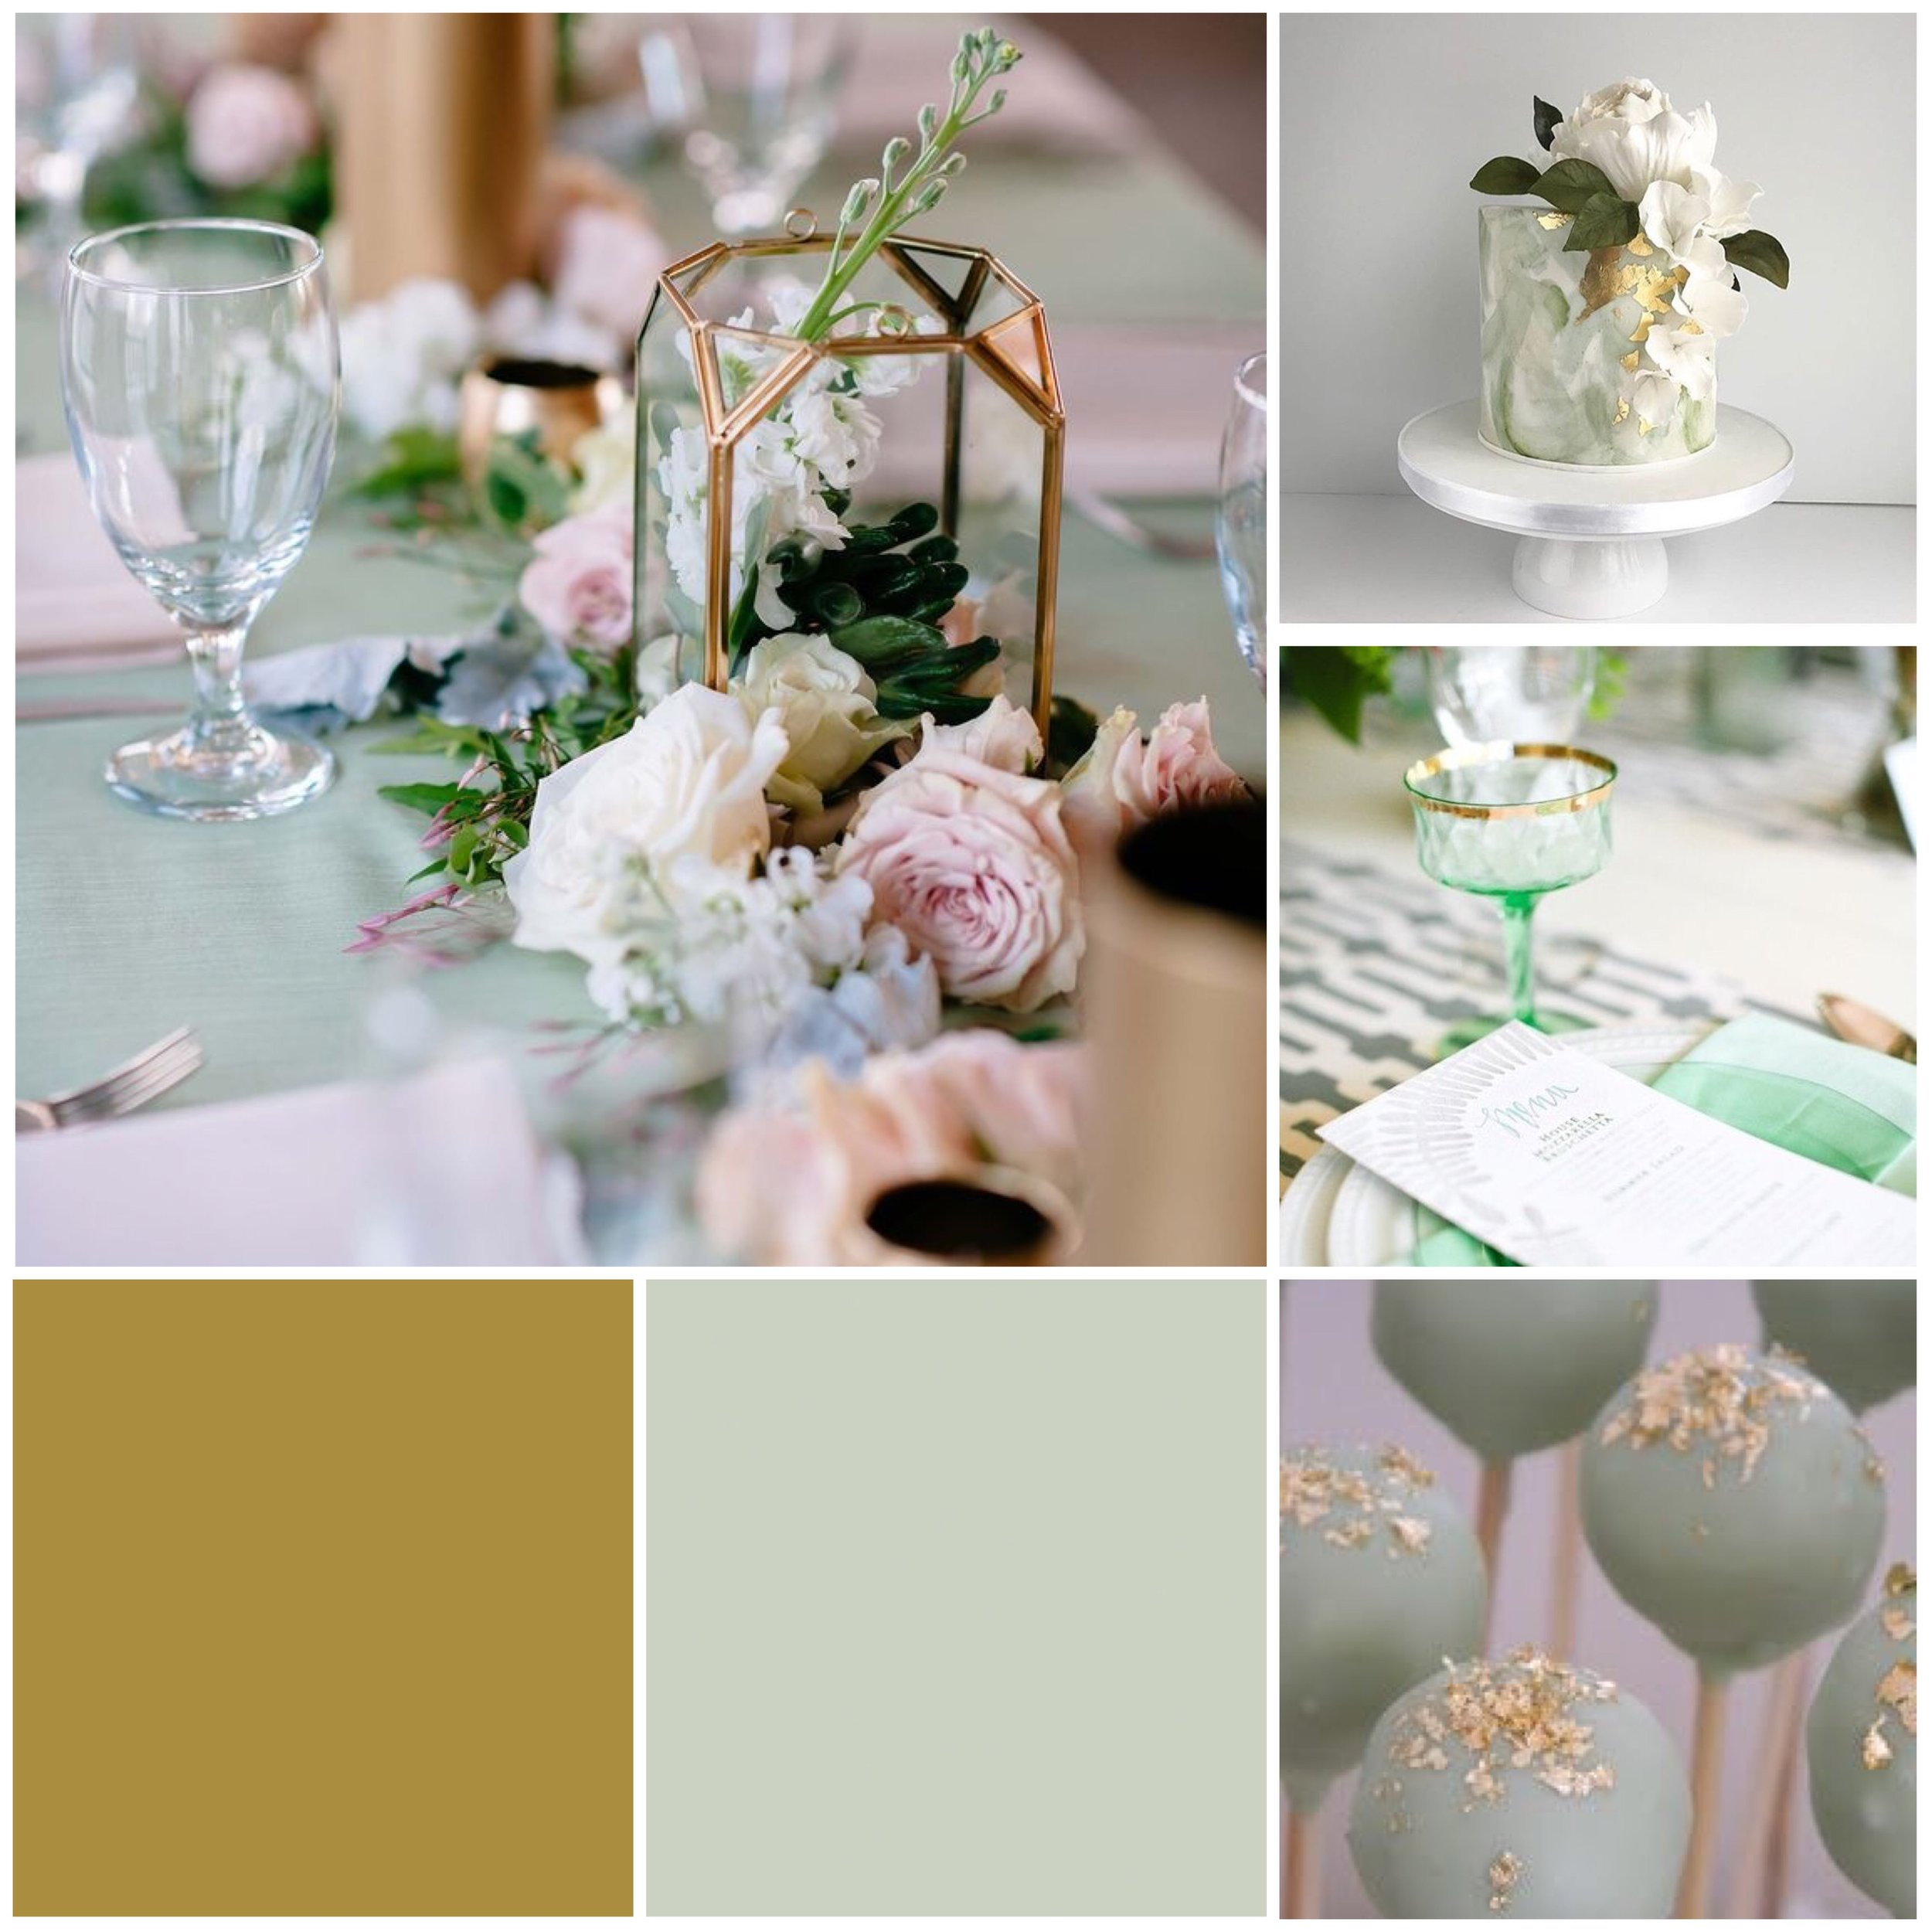 Pistachio & Gold Moodboard for your wedding inspiration.